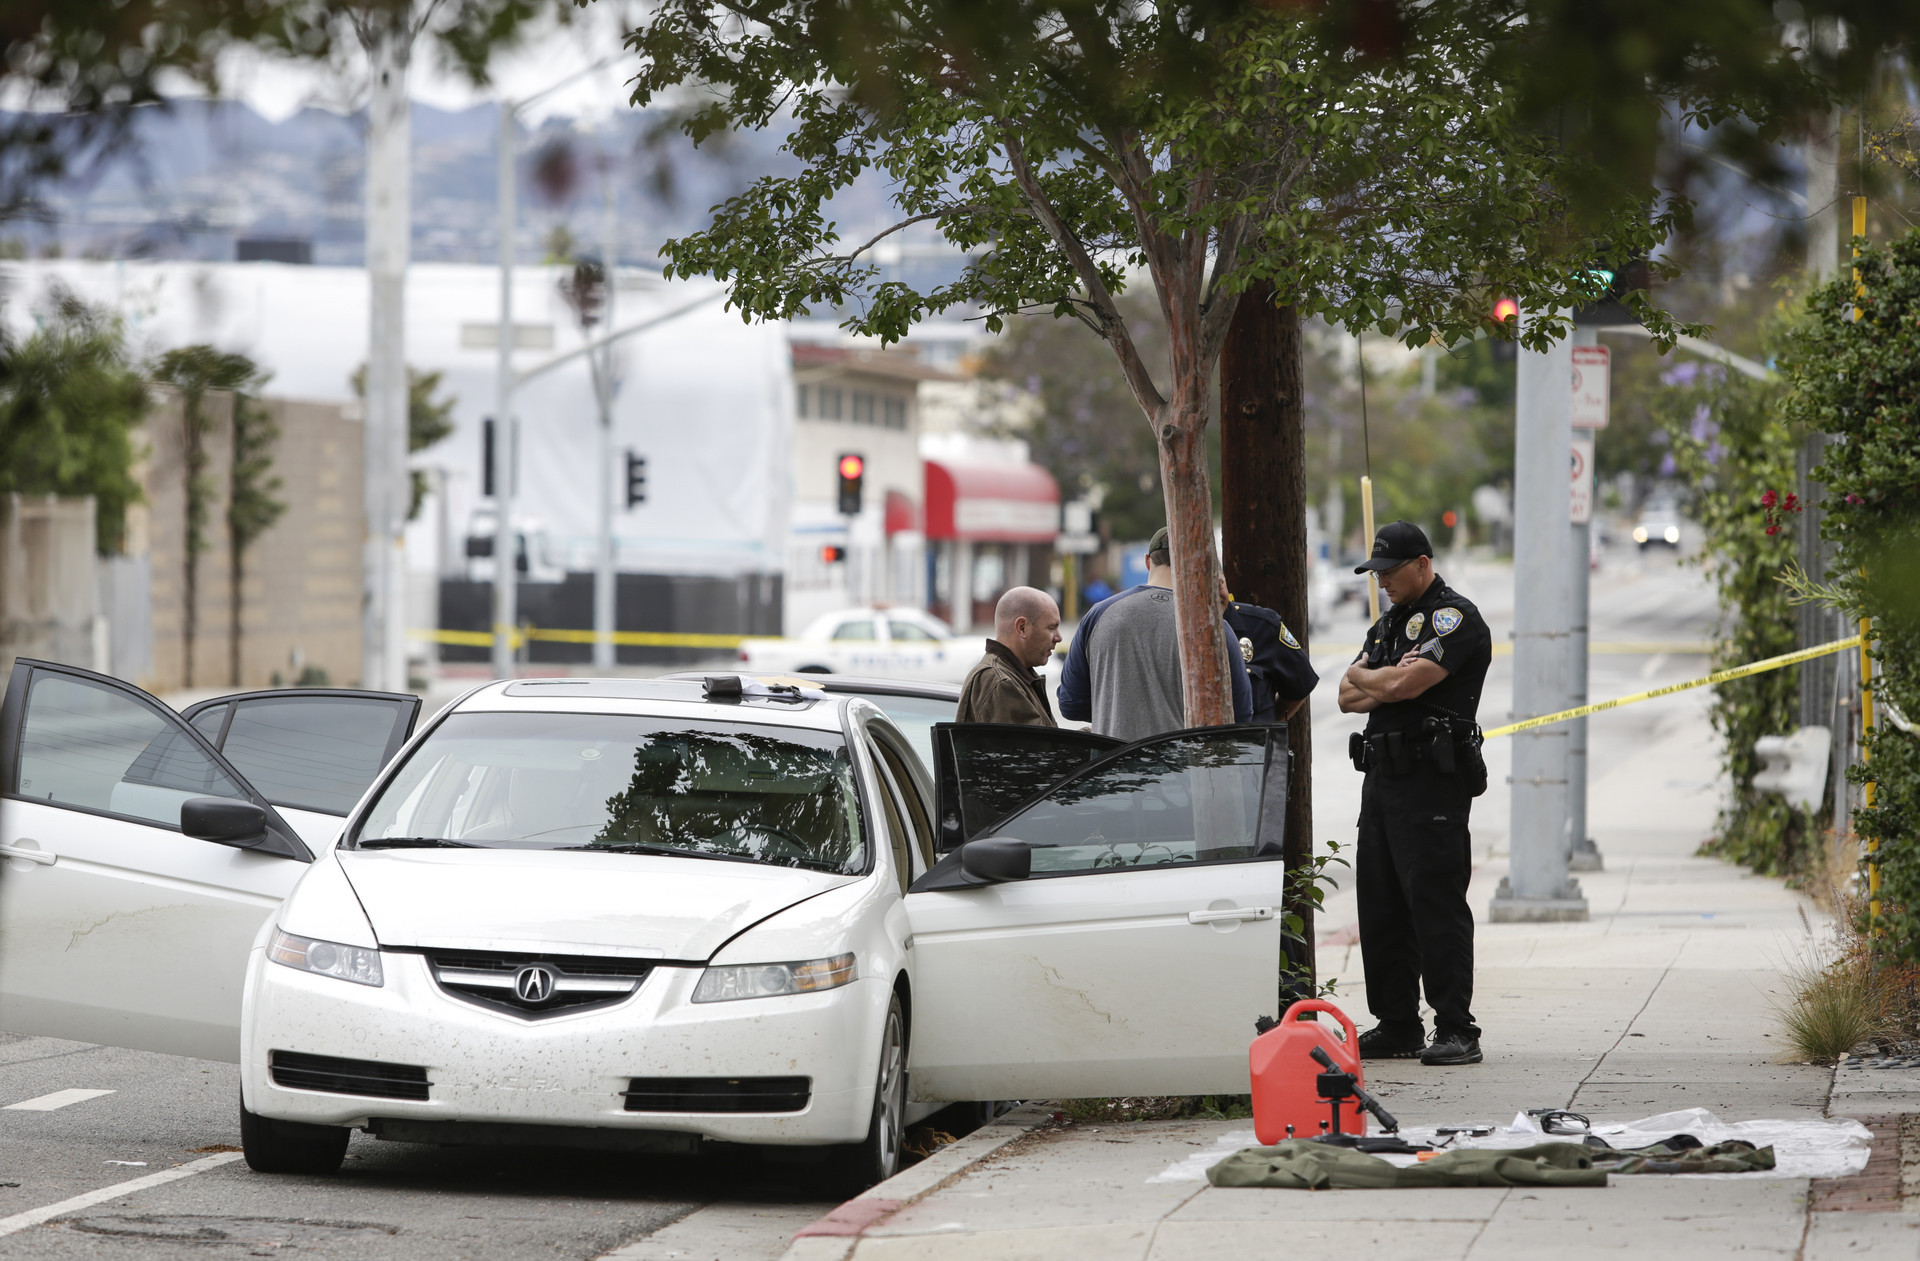 Police investigate a white sedan in Santa Monica on June 12, 2016. In the car, they found three assault rifles, high-capacity magazines and ammunition and a chemicals that could be used to make an explosive device.